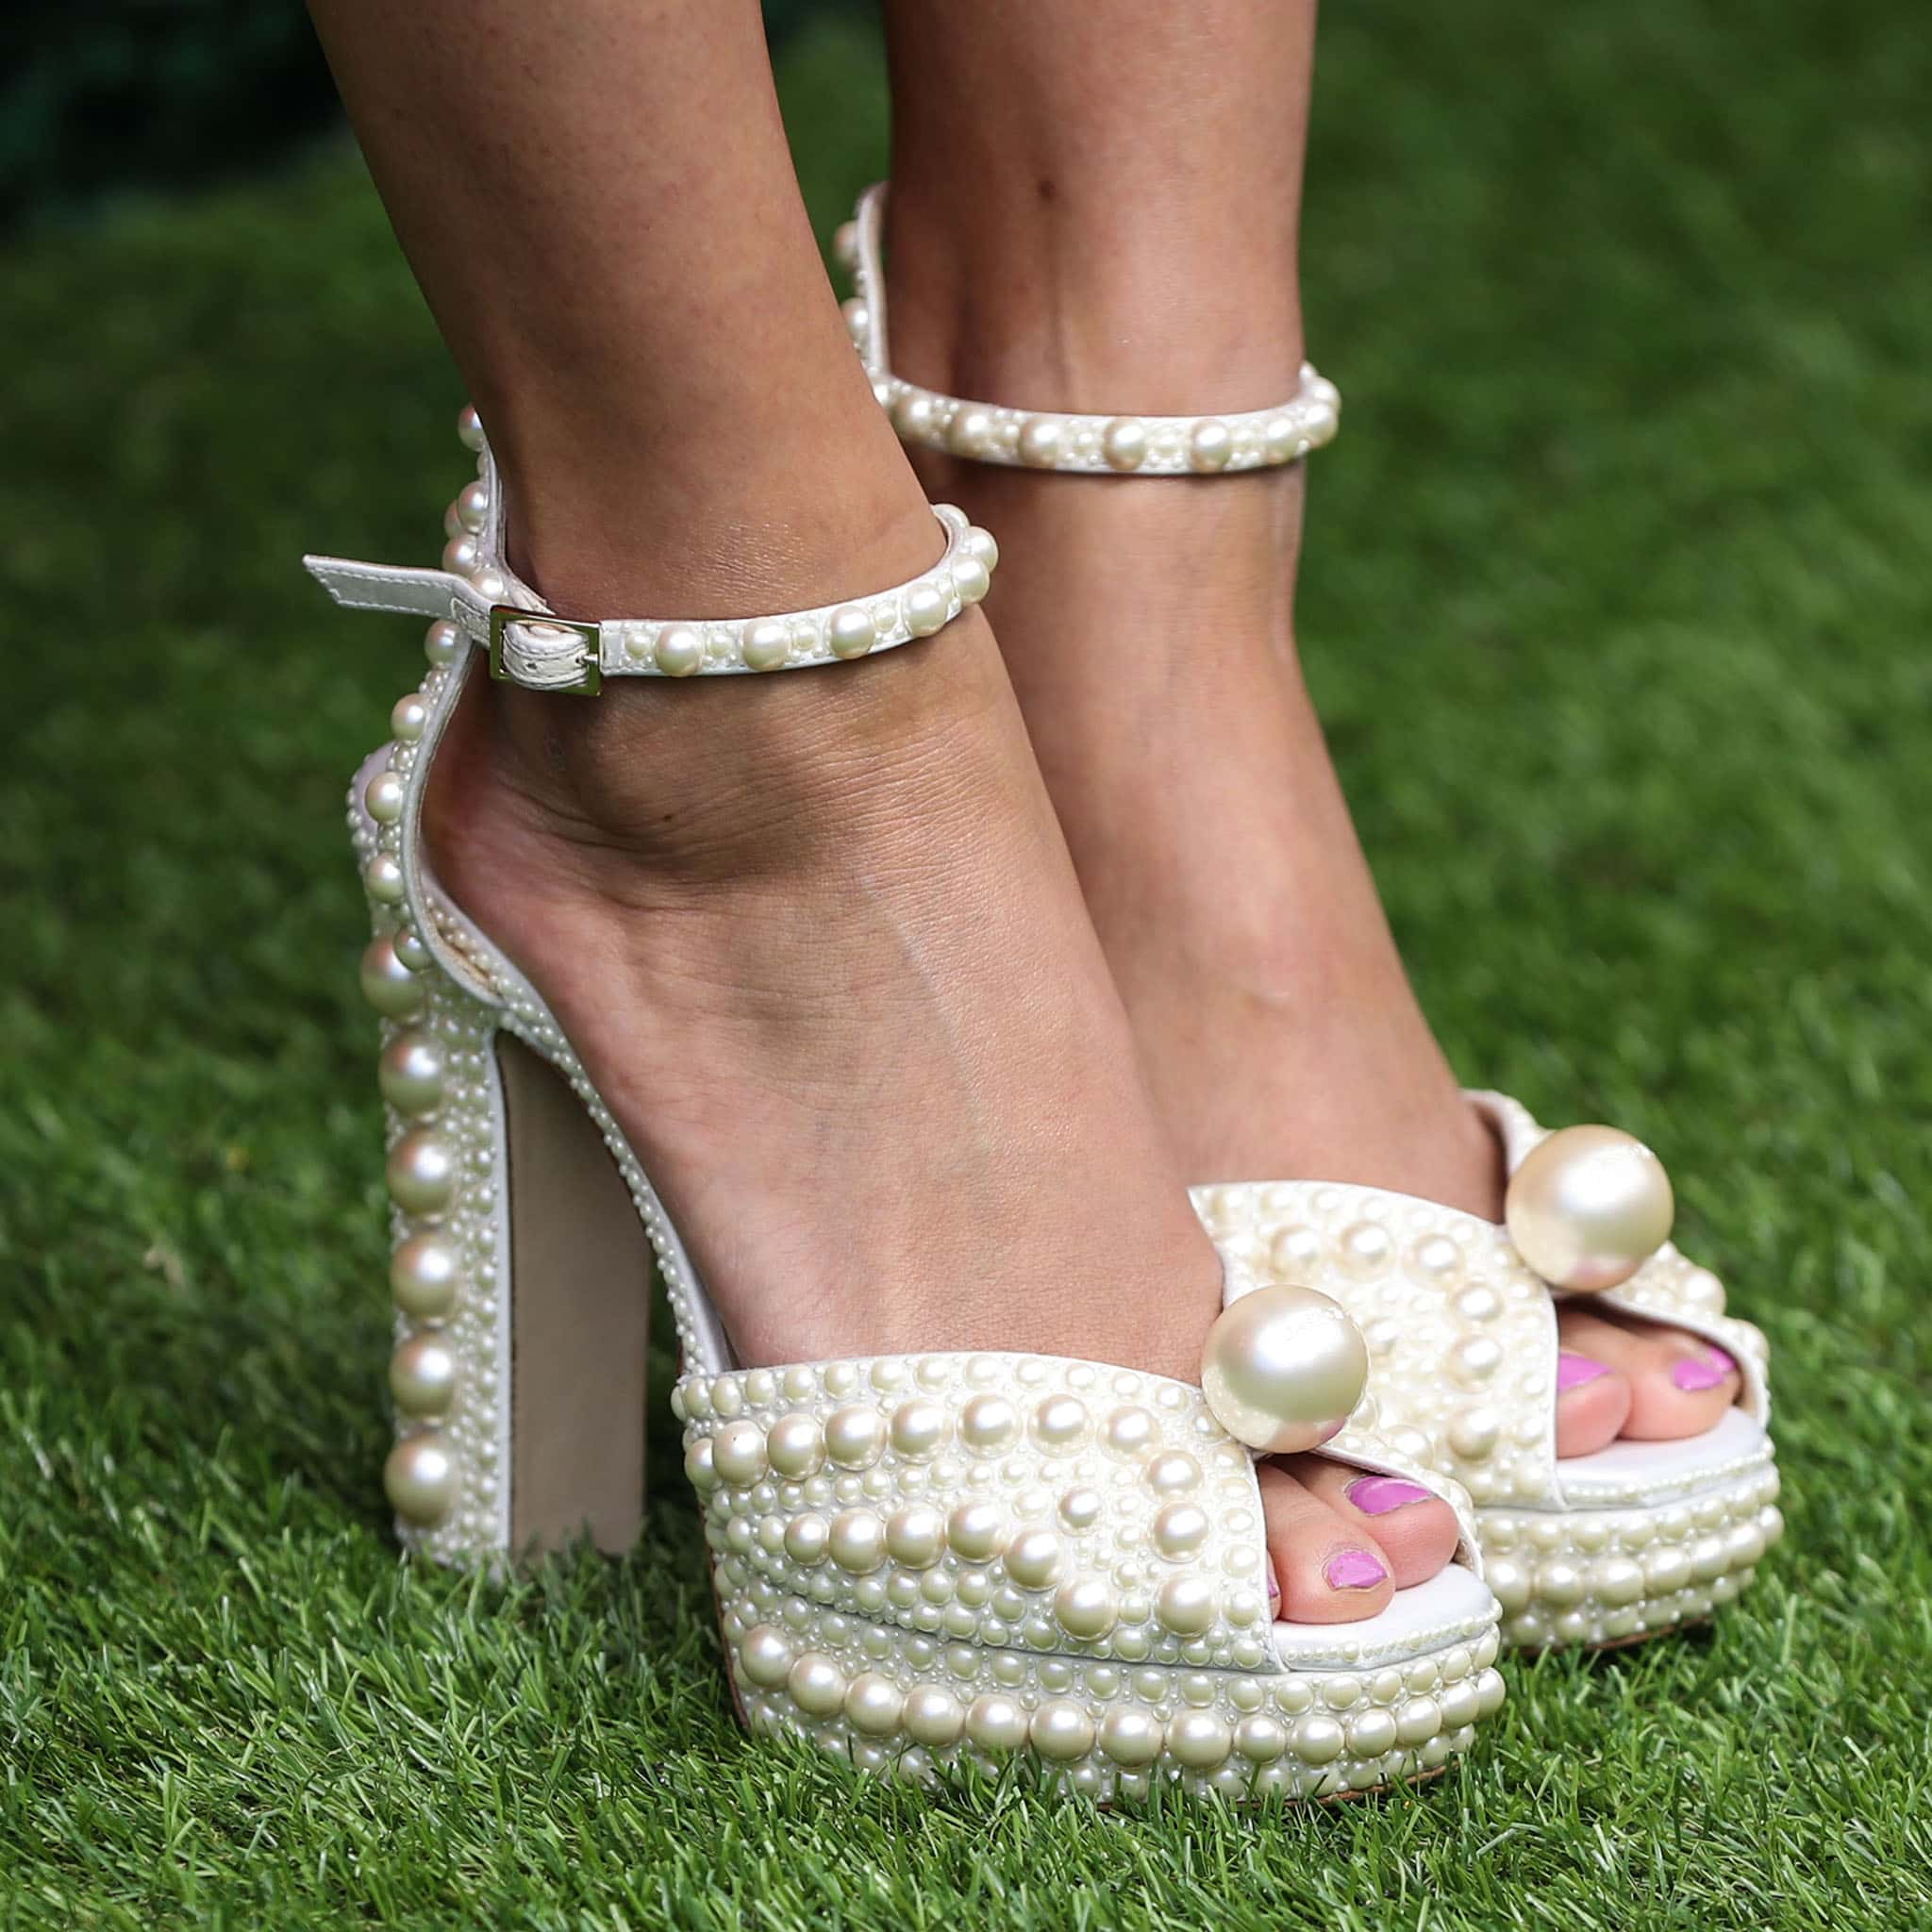 Lana Condor shows off her pink pedicure and pretty feet in Jimmy Choo's Sacaria pearl-embellished platform sandals